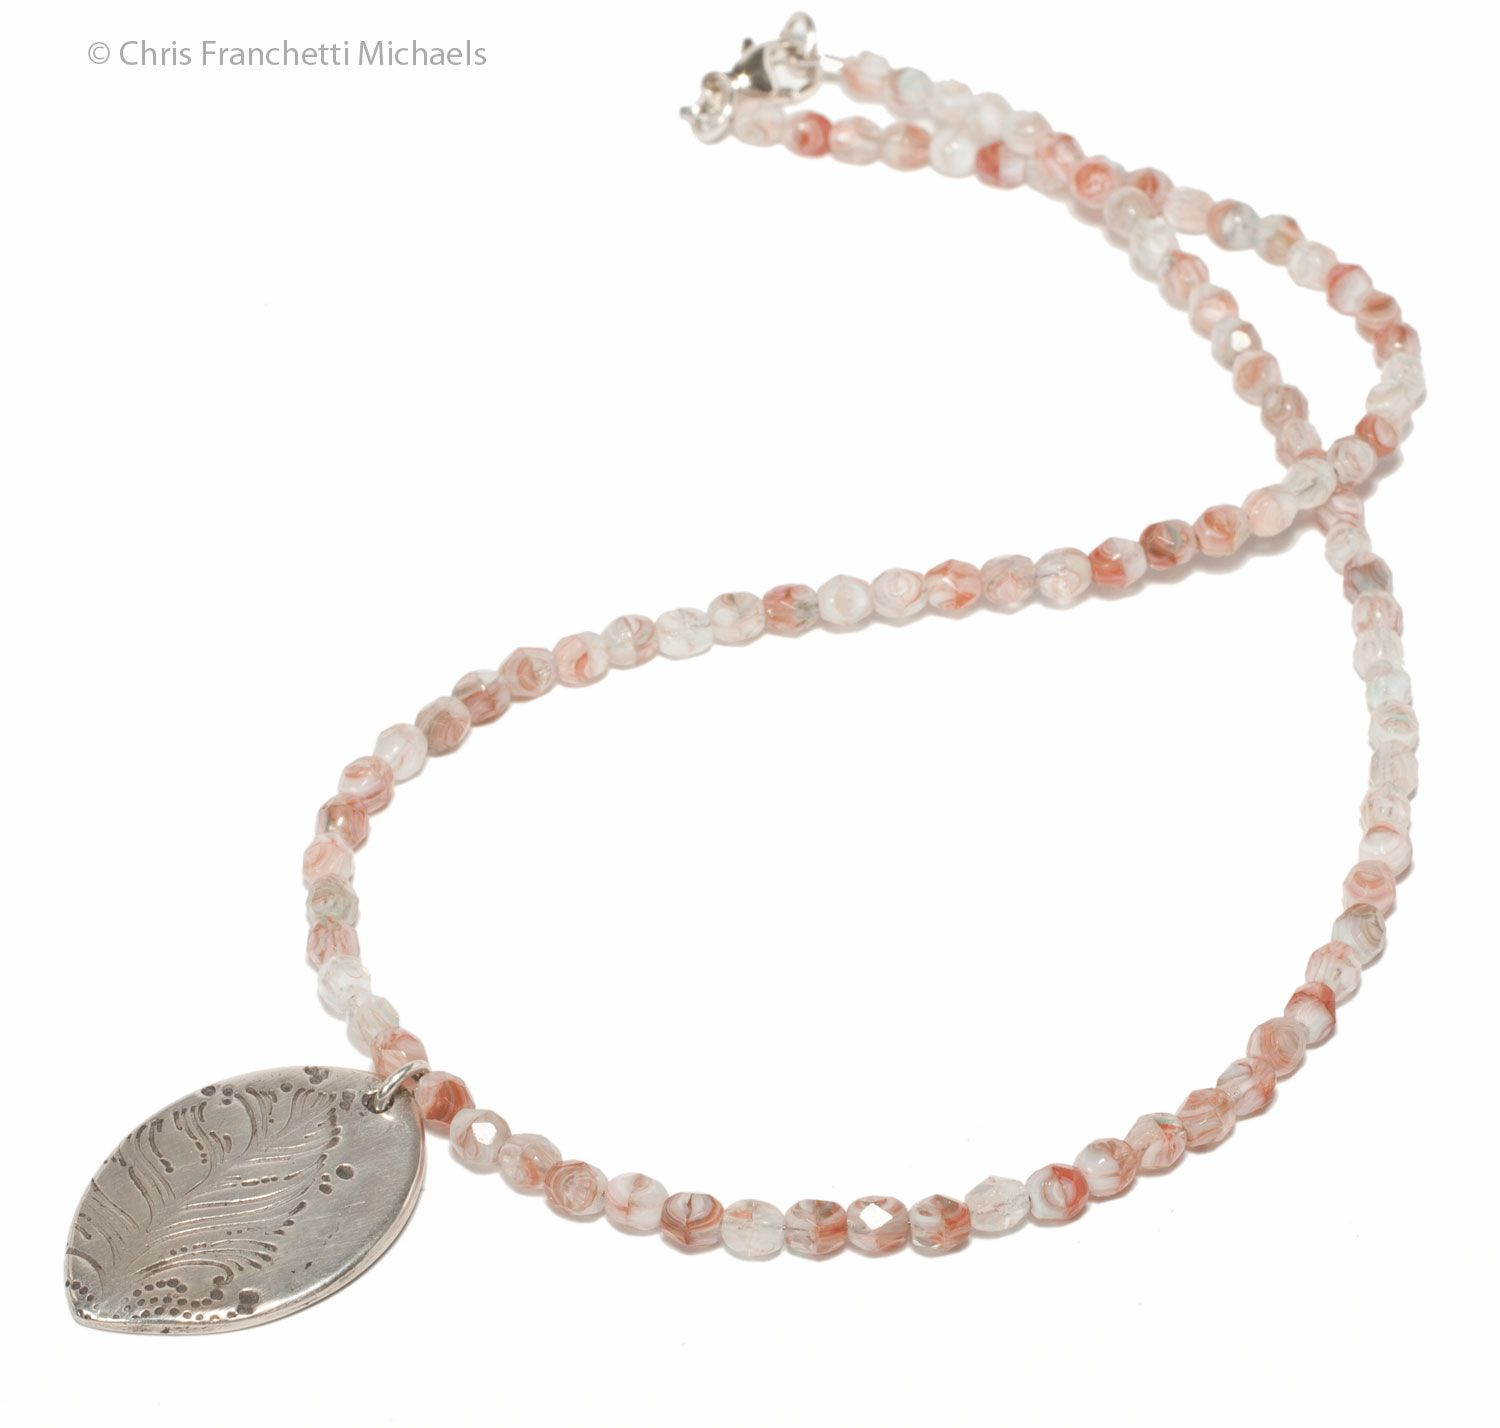 How To String Beads With Beading Wire Thread Read Wiring Diagrams A Completed Beaded Necklace Metal Clay Pendant